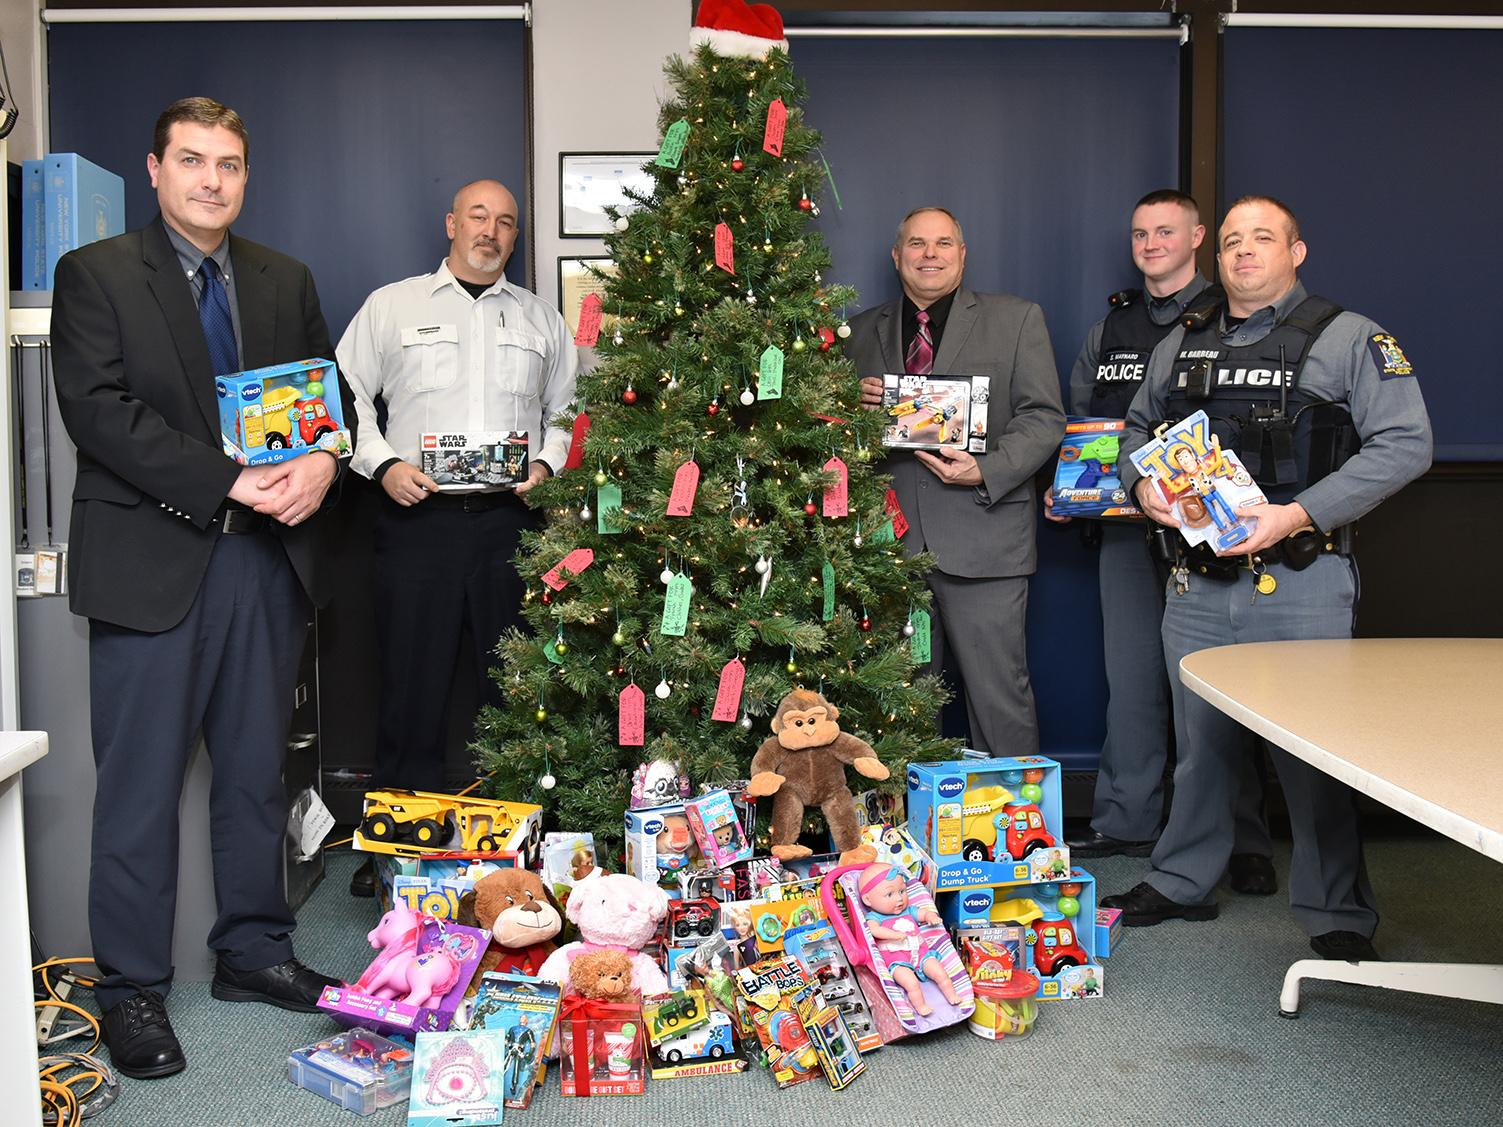 University Police with toys collected through dodgeball tournament